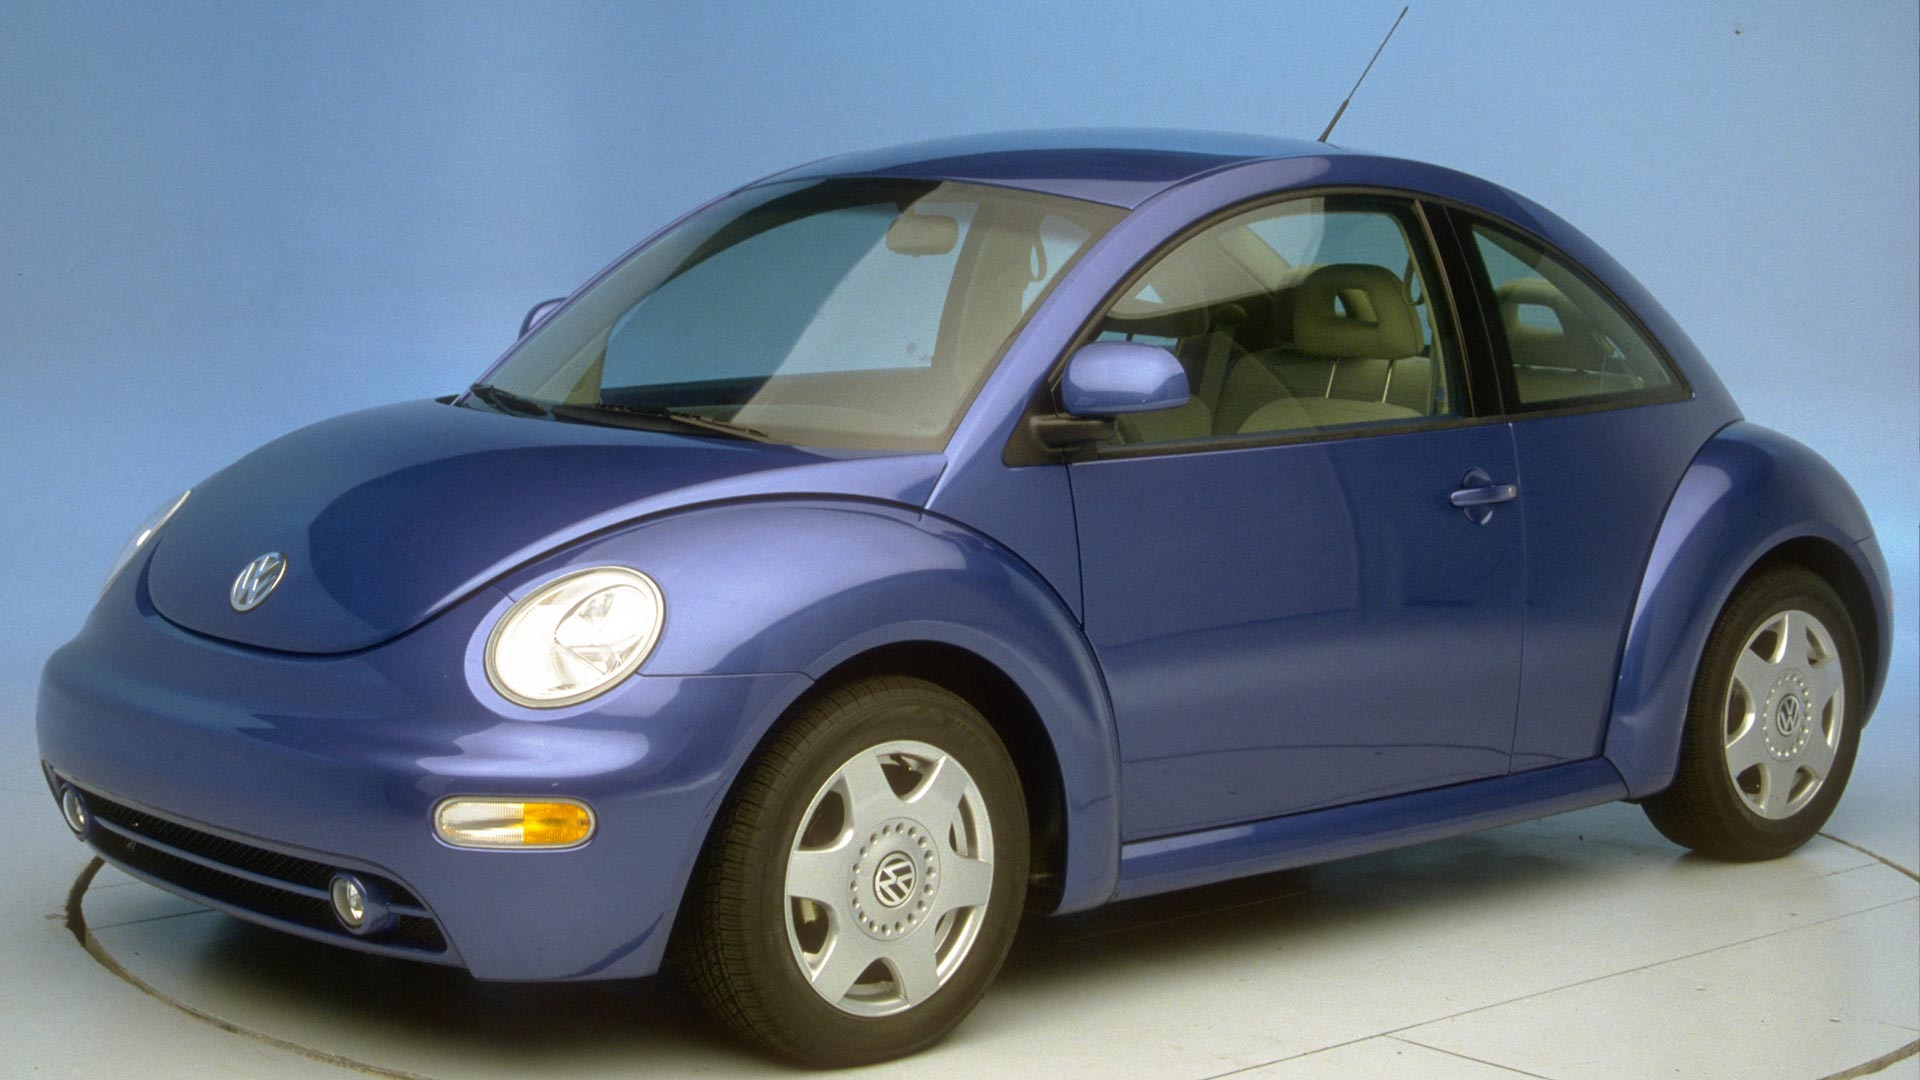 2000 Volkswagen New Beetle 2-door hatchback